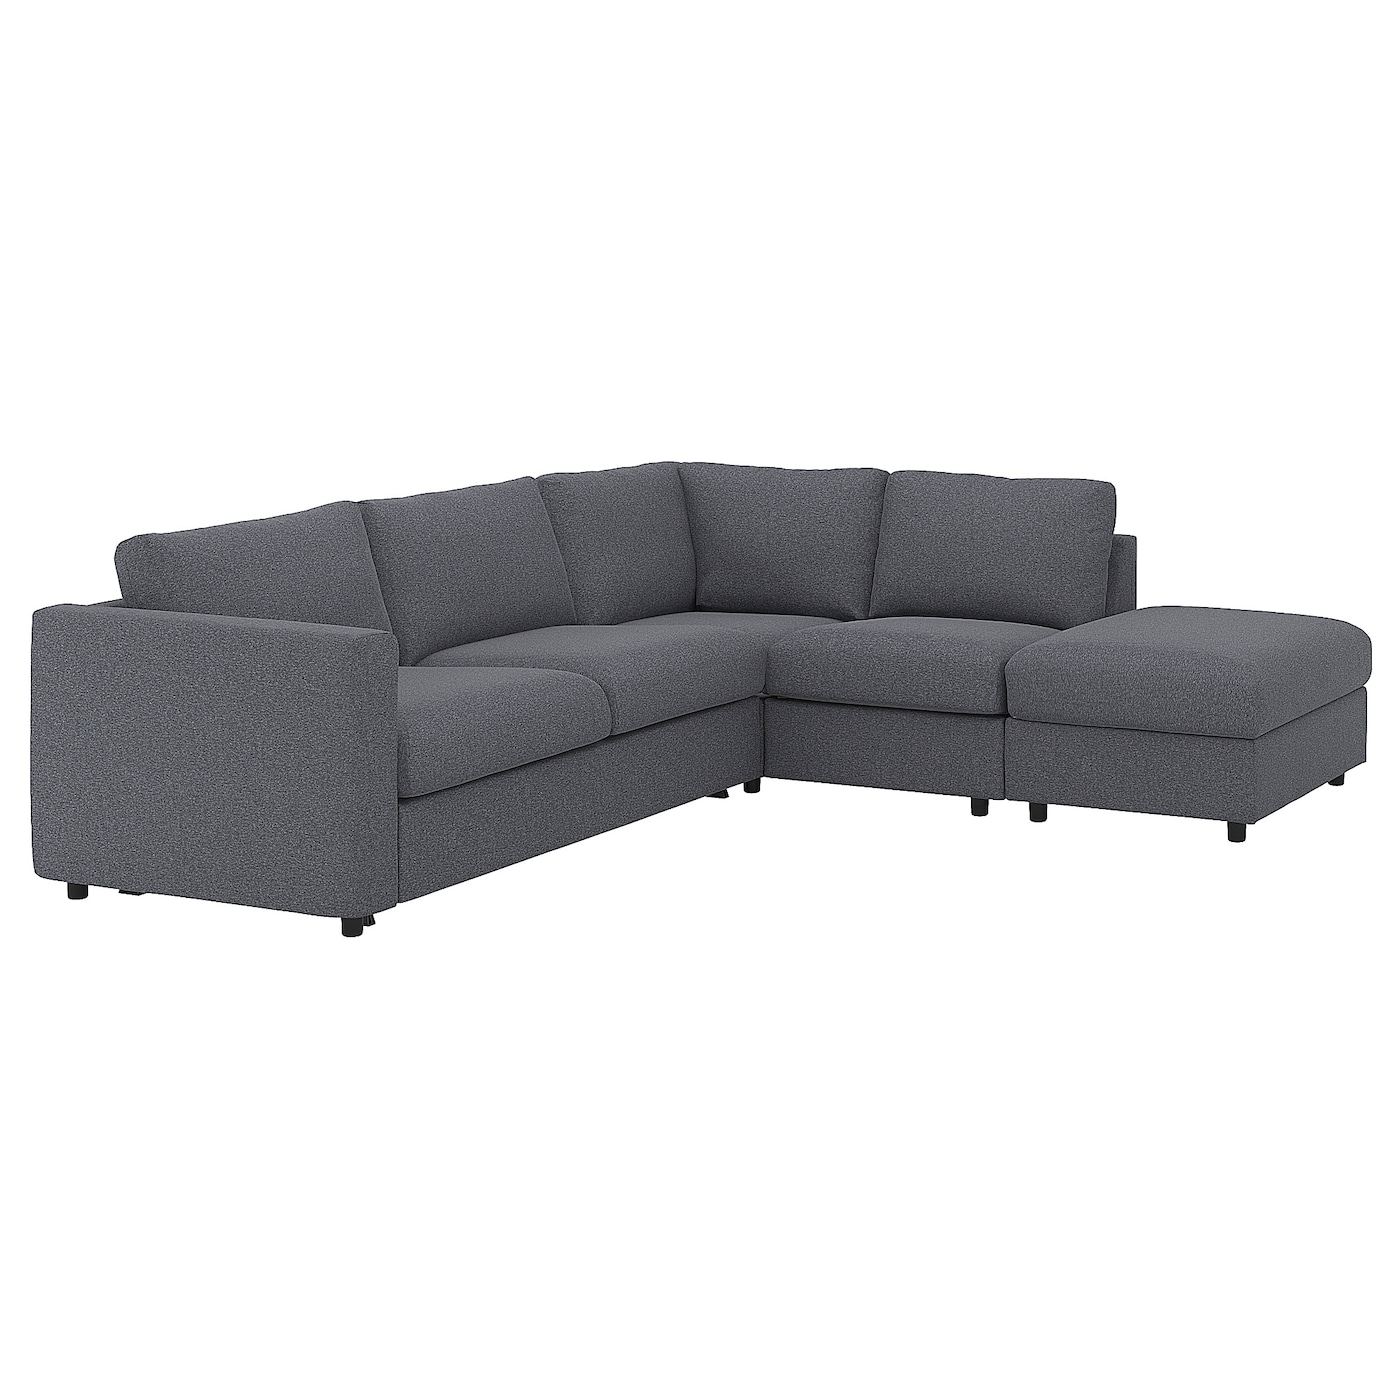 Vimle Cover For Corner Sofa Bed 4 Seat